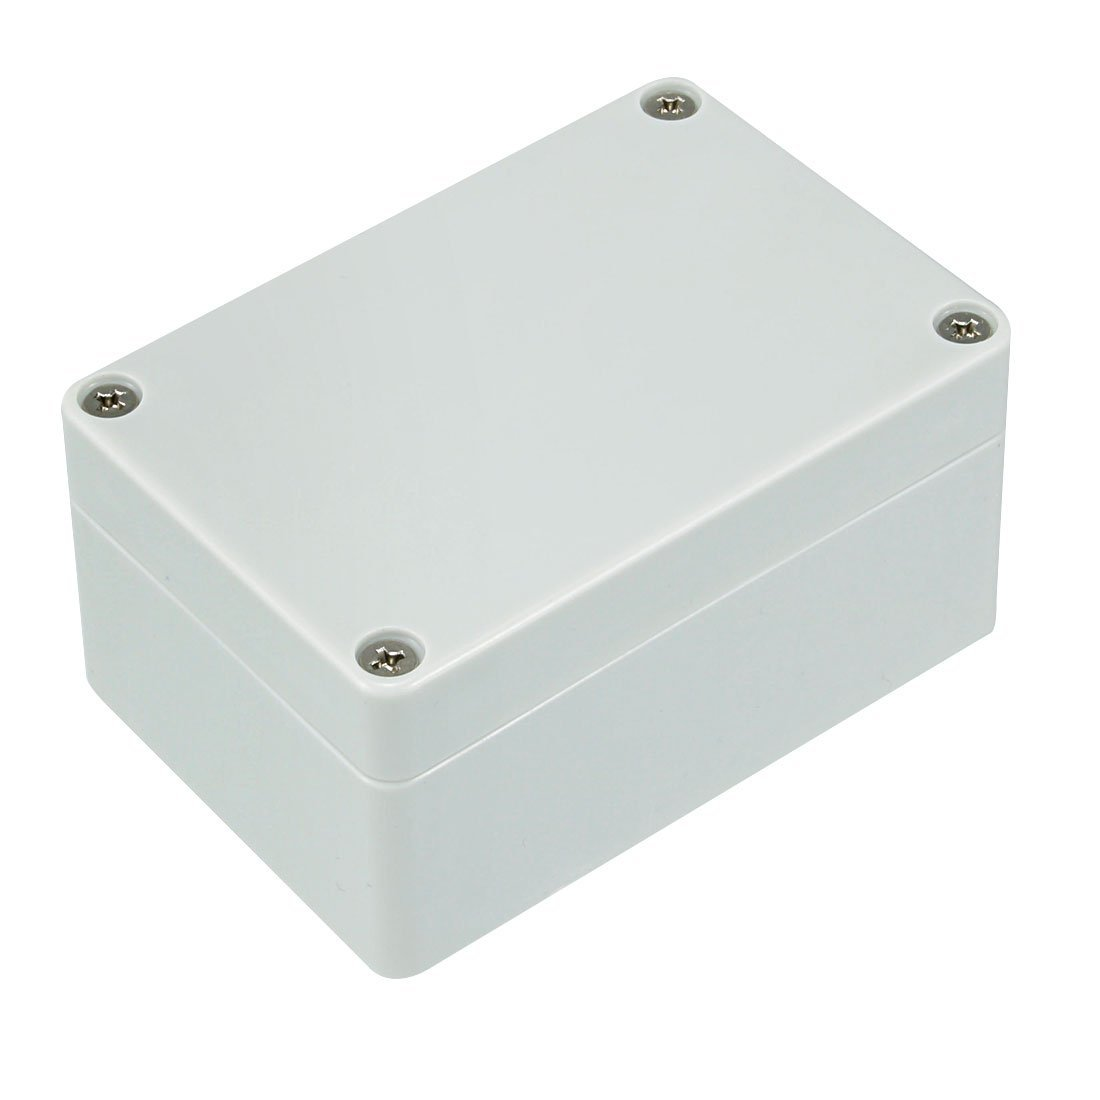 uxcell 153 x 113 x 70mm Electronic Plastic DIY Junction Box Enclosure Case White a18032100ux0332